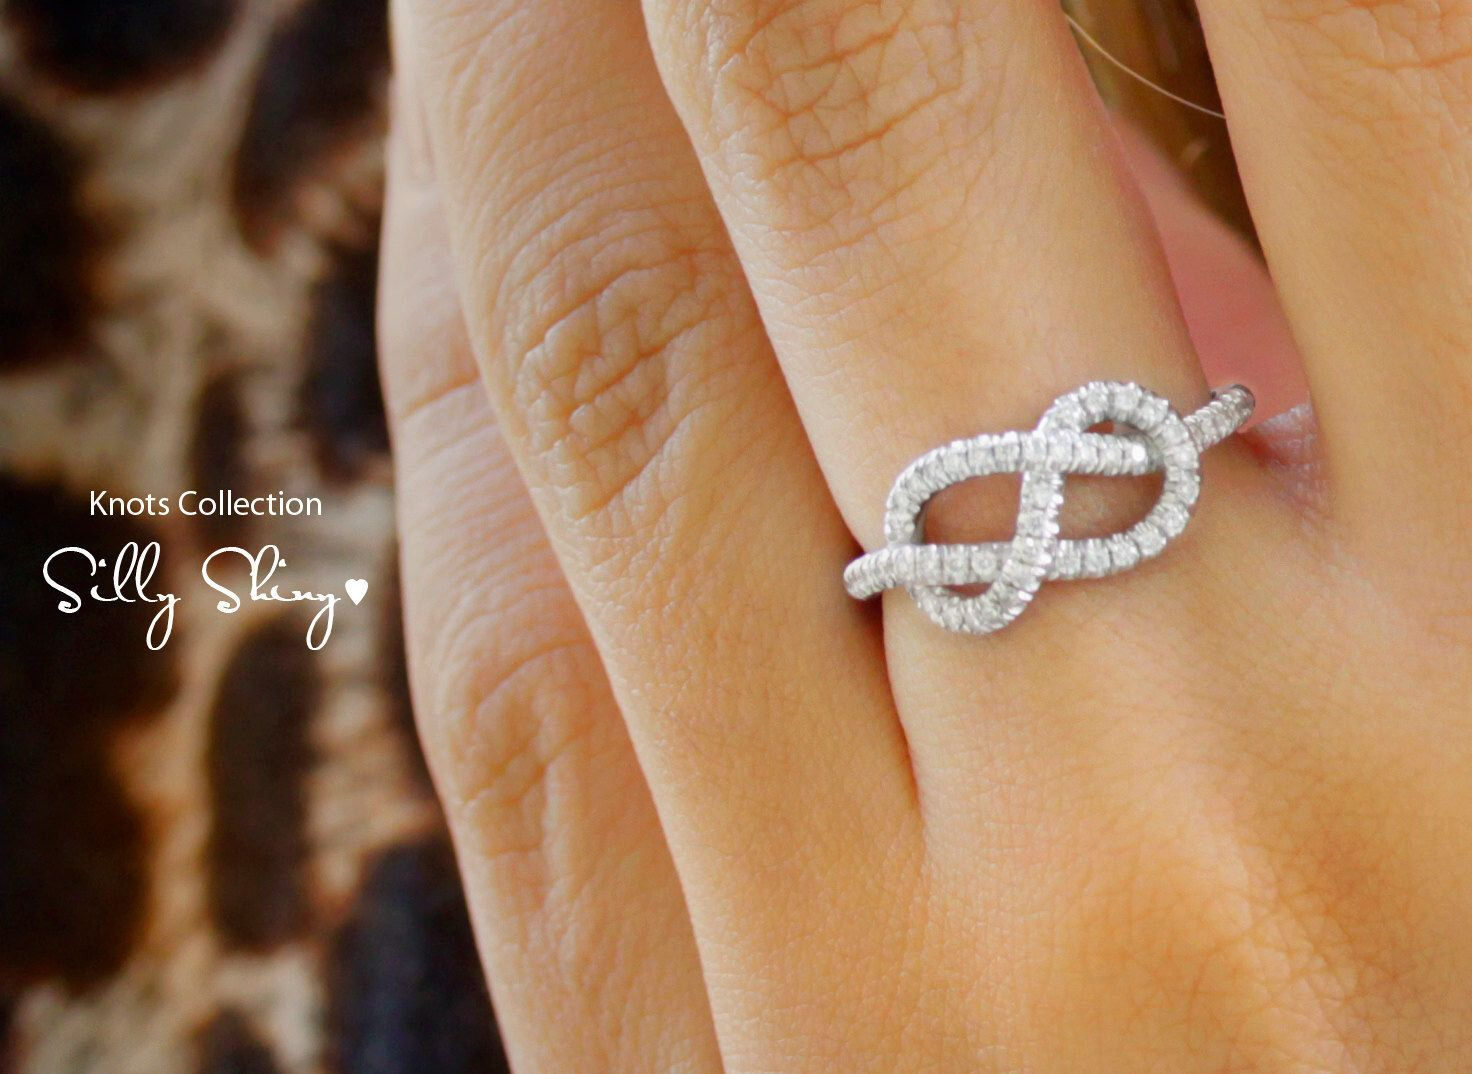 Infinity Knot Diamond Ring - Infinity engagement ring  - The Original - 14k gold or 18k gold by SillyShinyDiamonds on Etsy https://www.etsy.com/listing/88653176/infinity-knot-diamond-ring-infinity